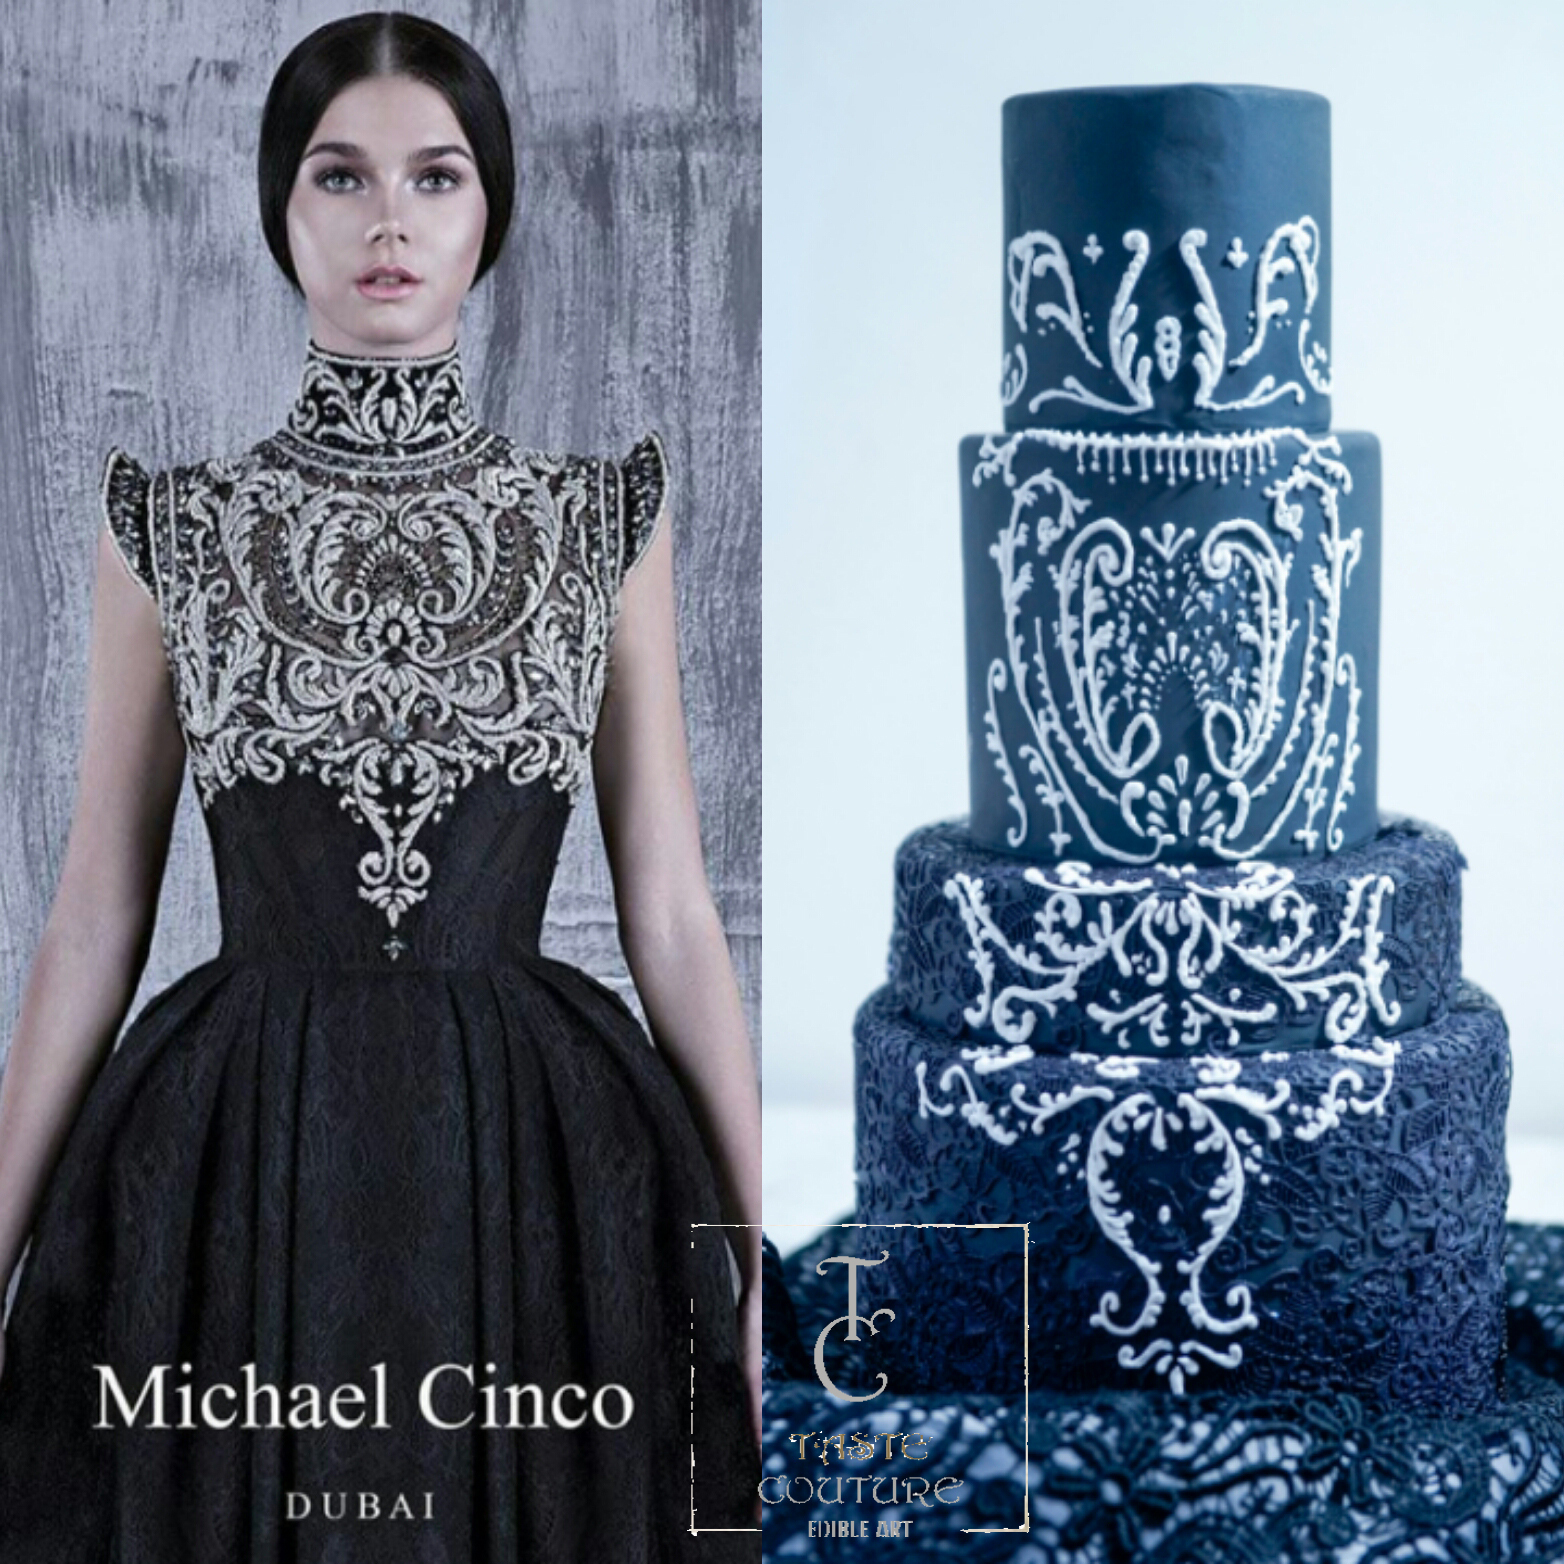 All black fondant wedding cake with white lace